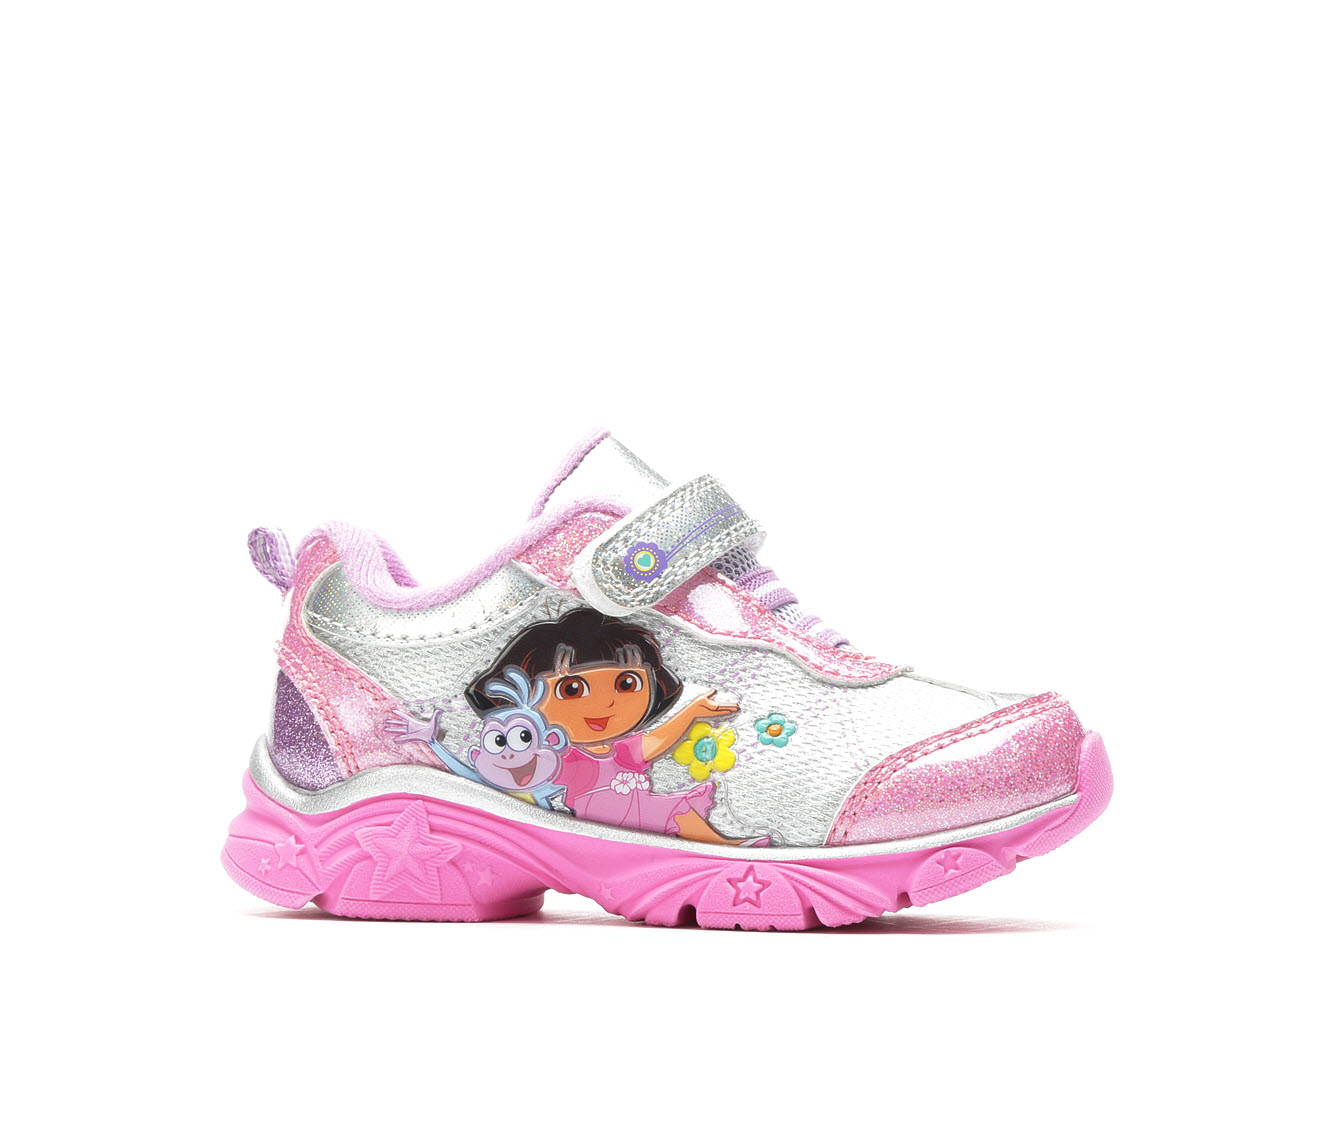 Girls' Nickelodeon Dora 4 Light-Up Sneakers (Silver)